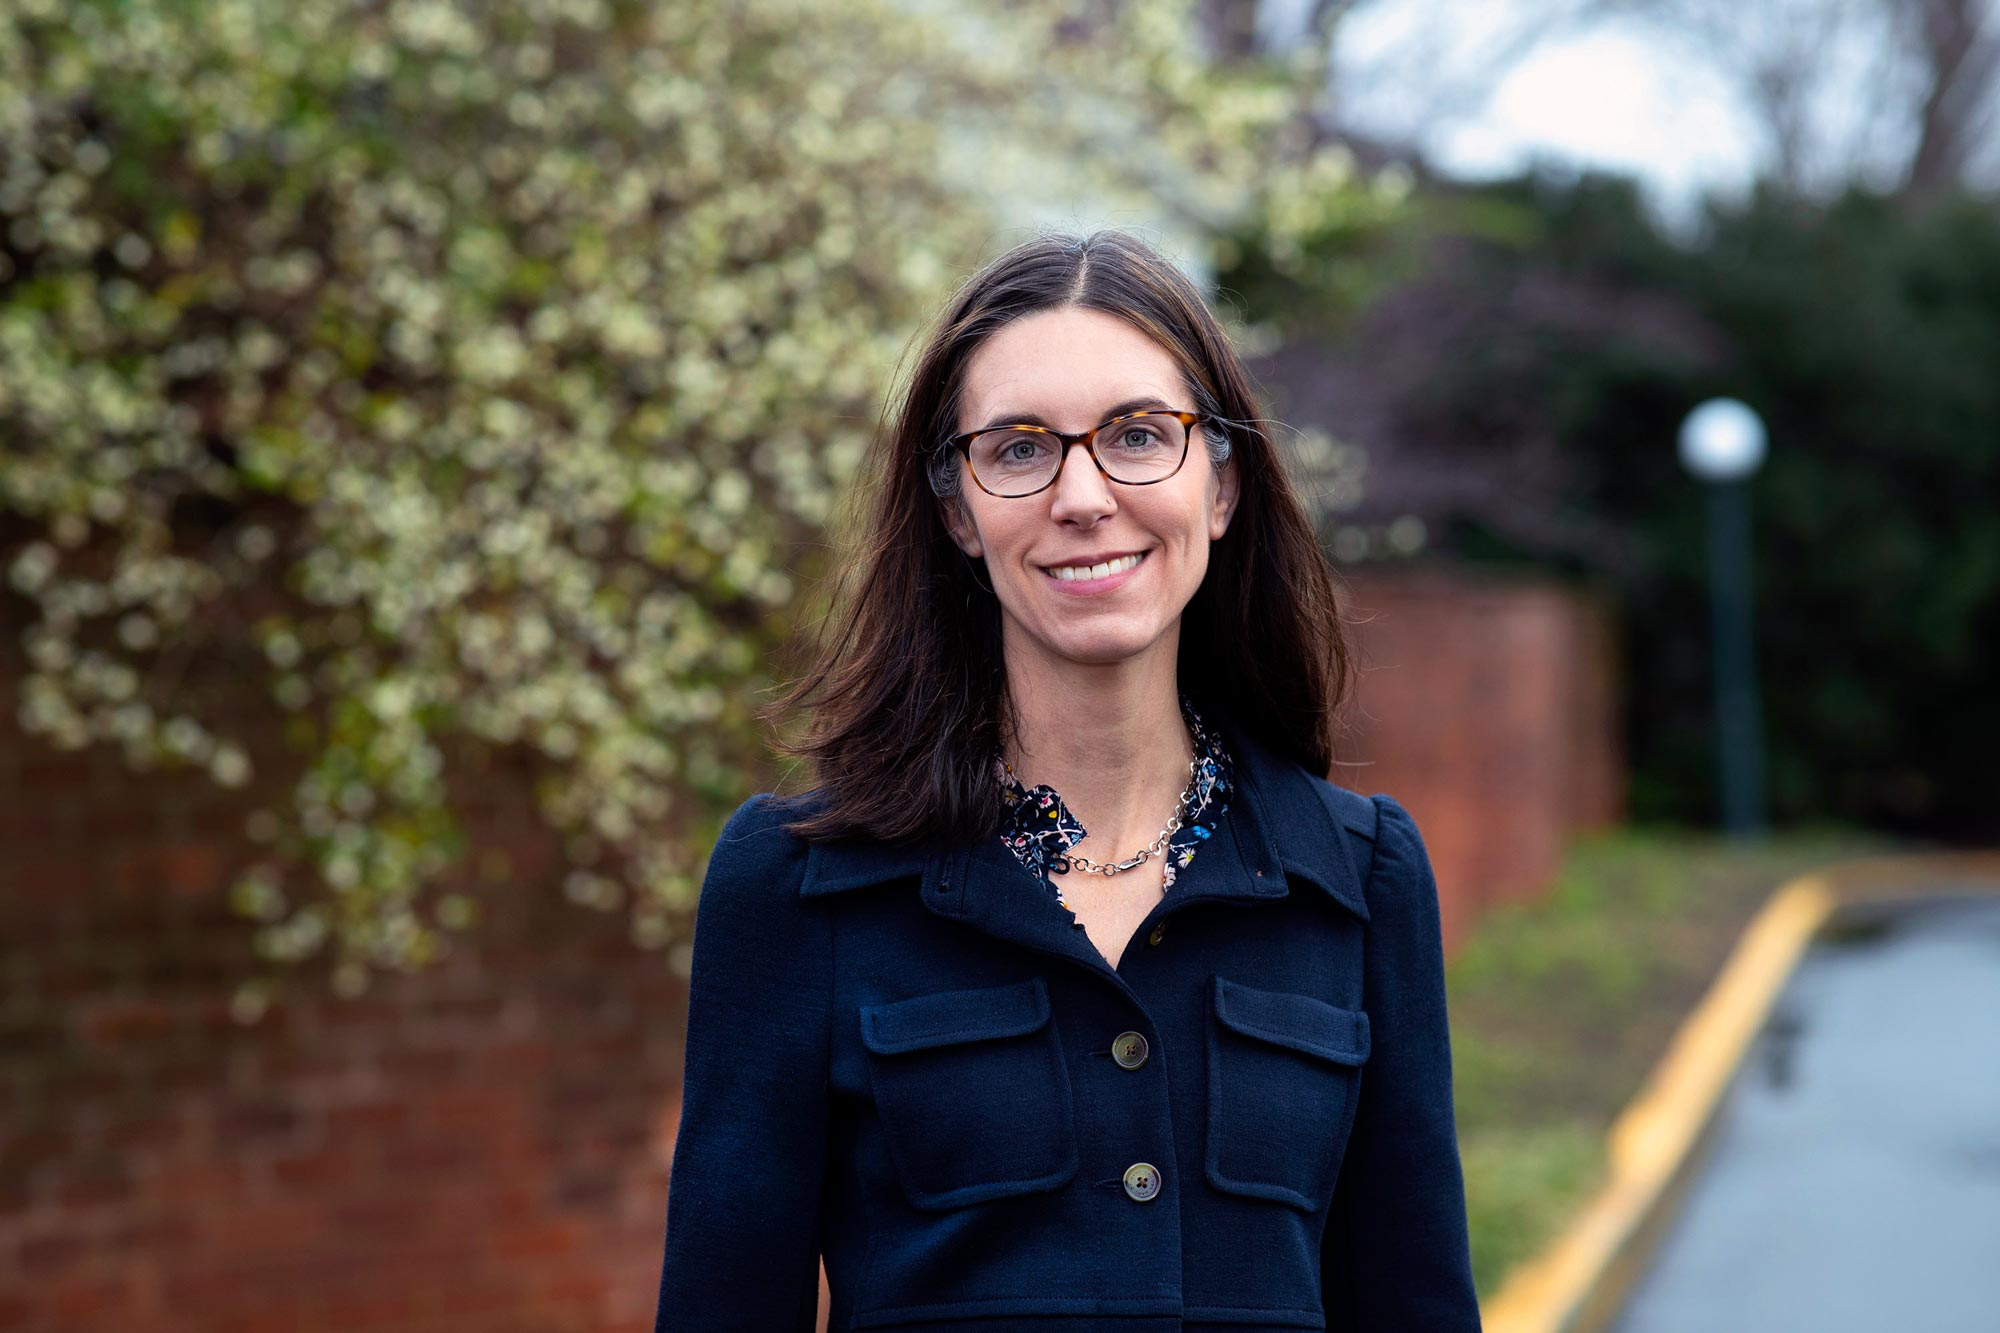 Lucy Bassett is an associate professor of practice in UVA's Frank Batten School of Leadership and Public Policy, where she focuses on humanitarian issues.